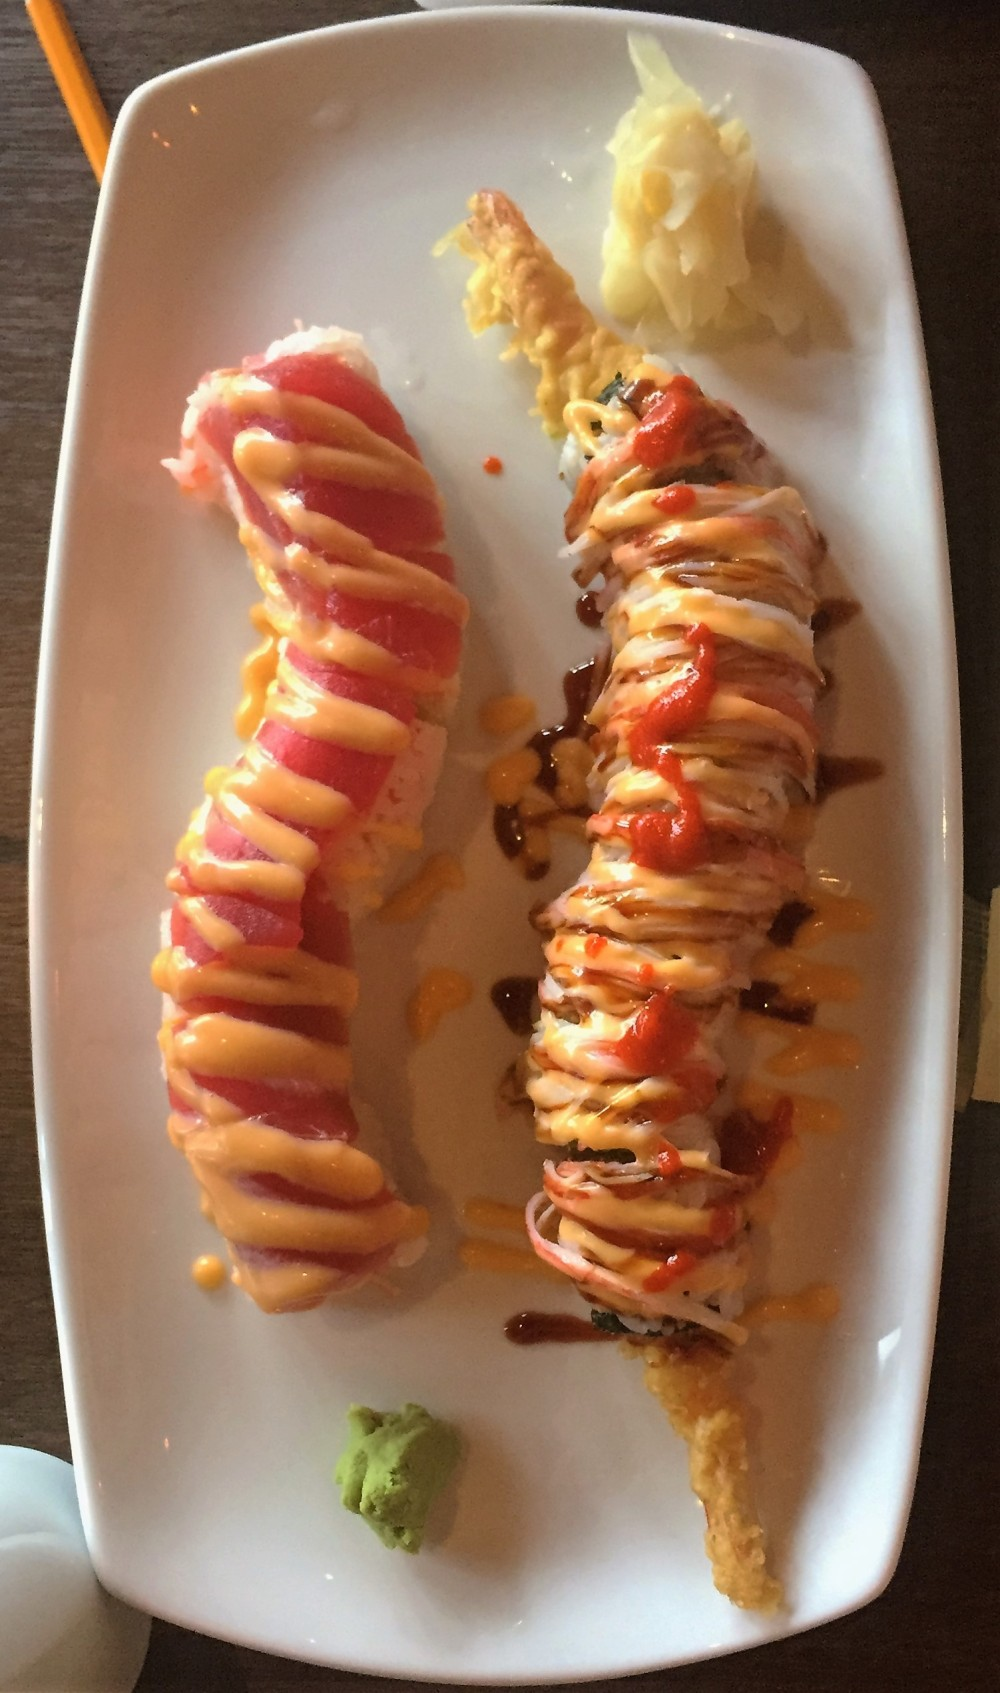 sunny roll, charming roll, sushi, tempura, black ship, little katana, japanese, korean, american, foodie, downtown dallas, foodie, omni